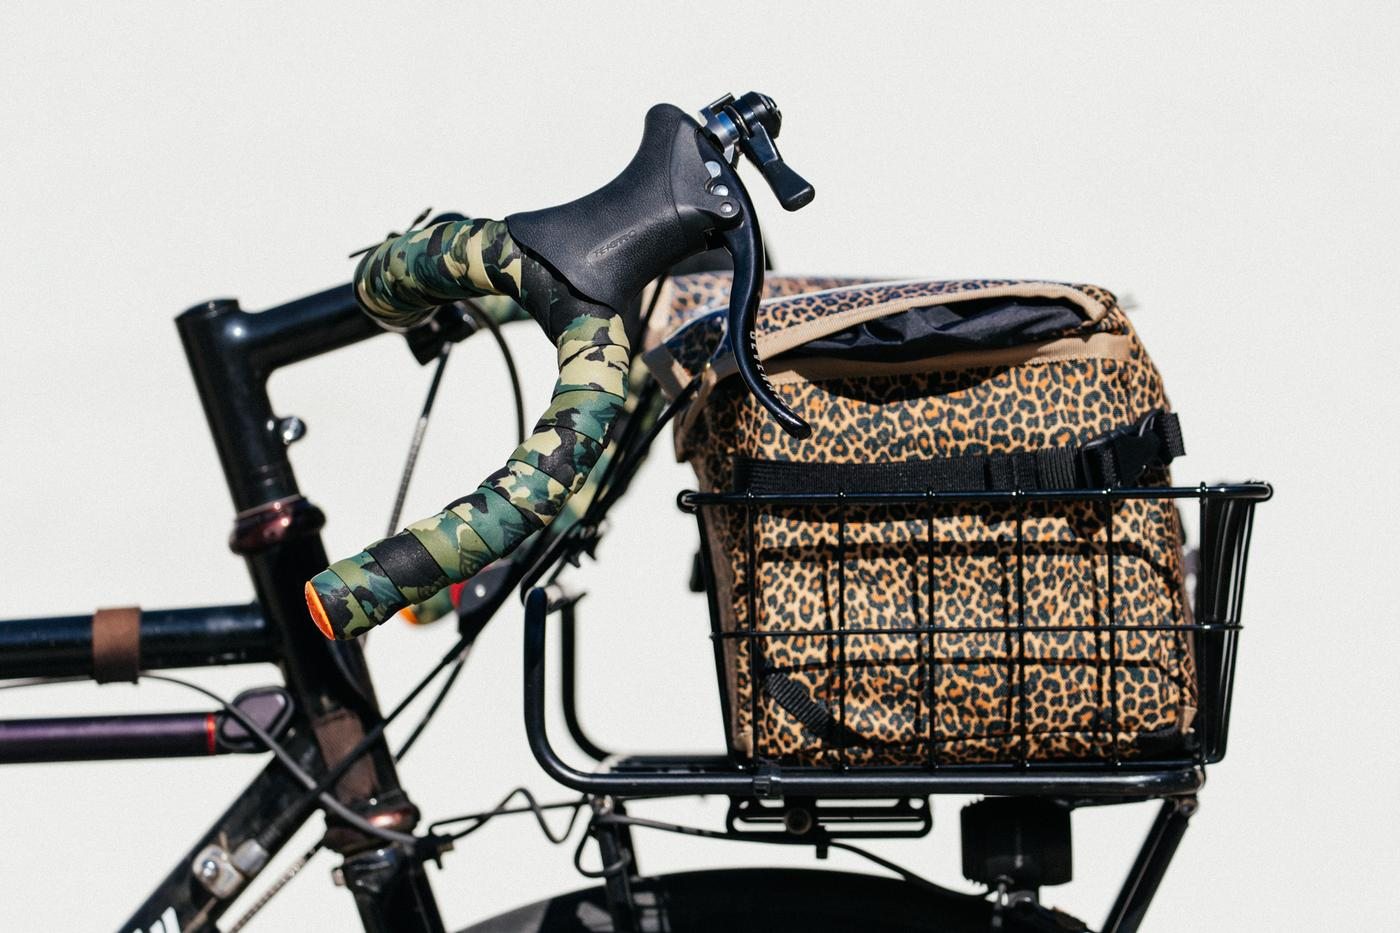 Outer Shell's Basket Bag is in Stock!